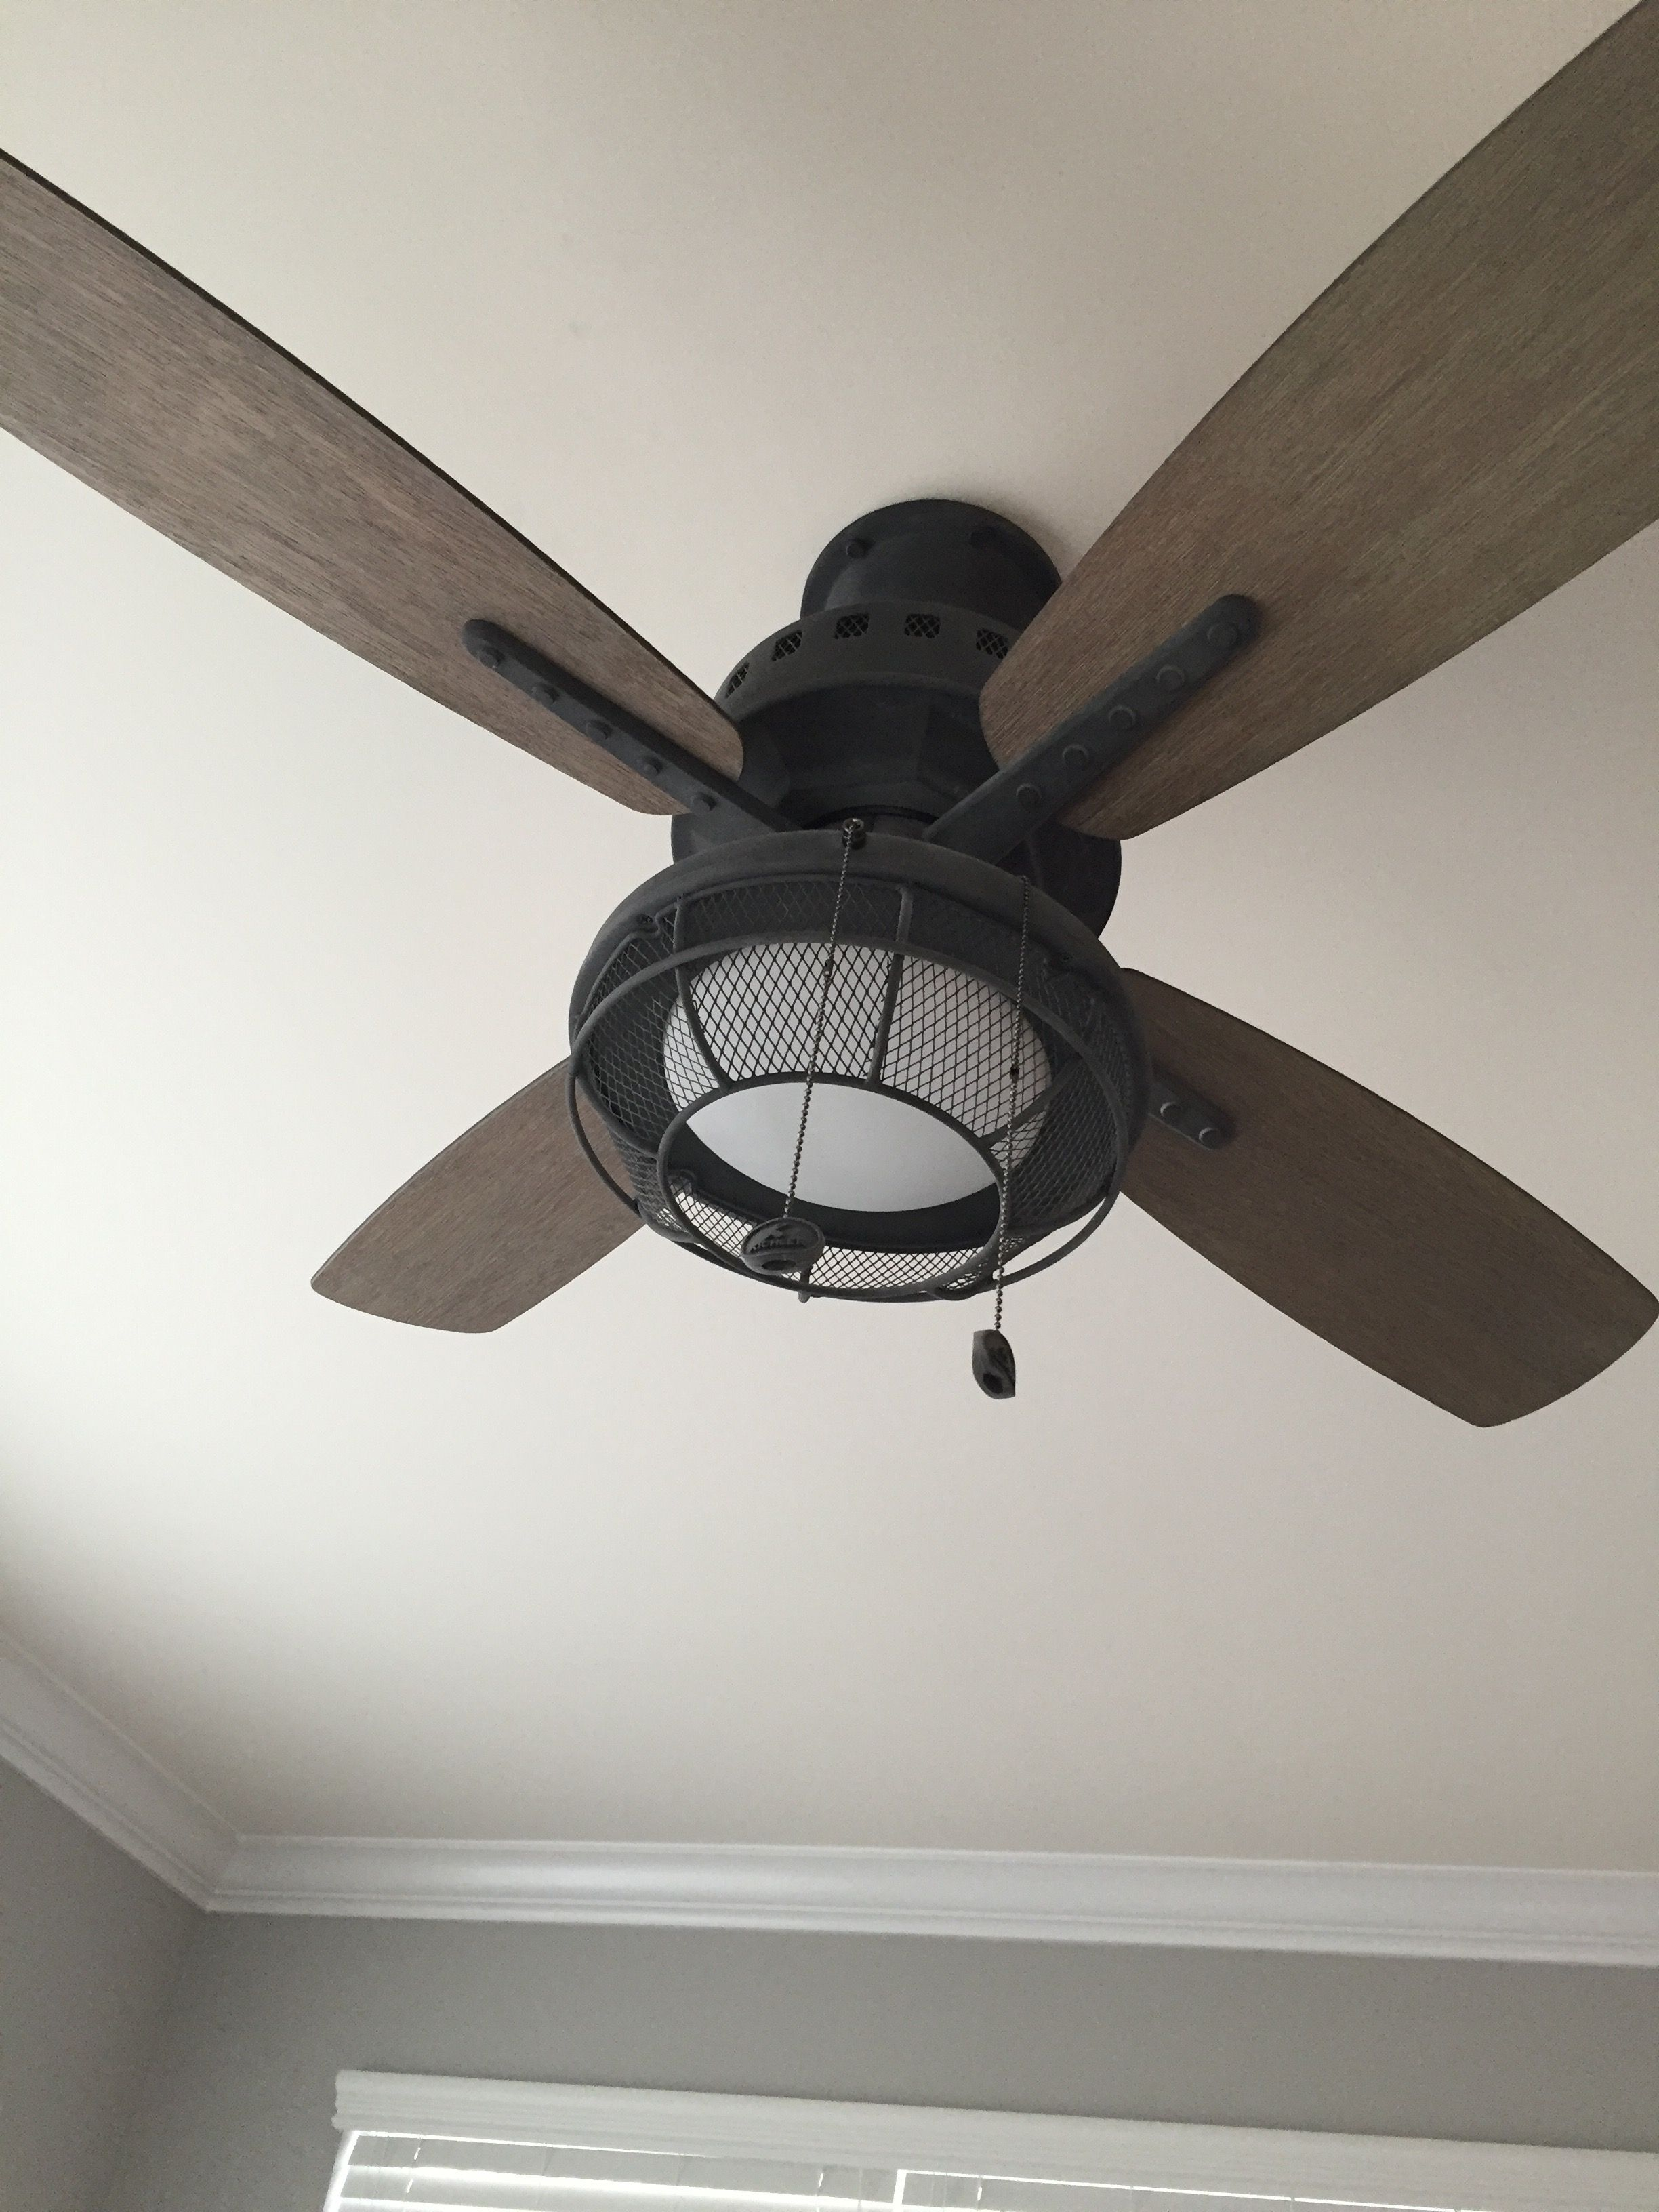 regular minka fans capitol item inch shown glass ceiling bn aire in nickel image magnifying cfm bulbs finish raptor with blade brushed light fan